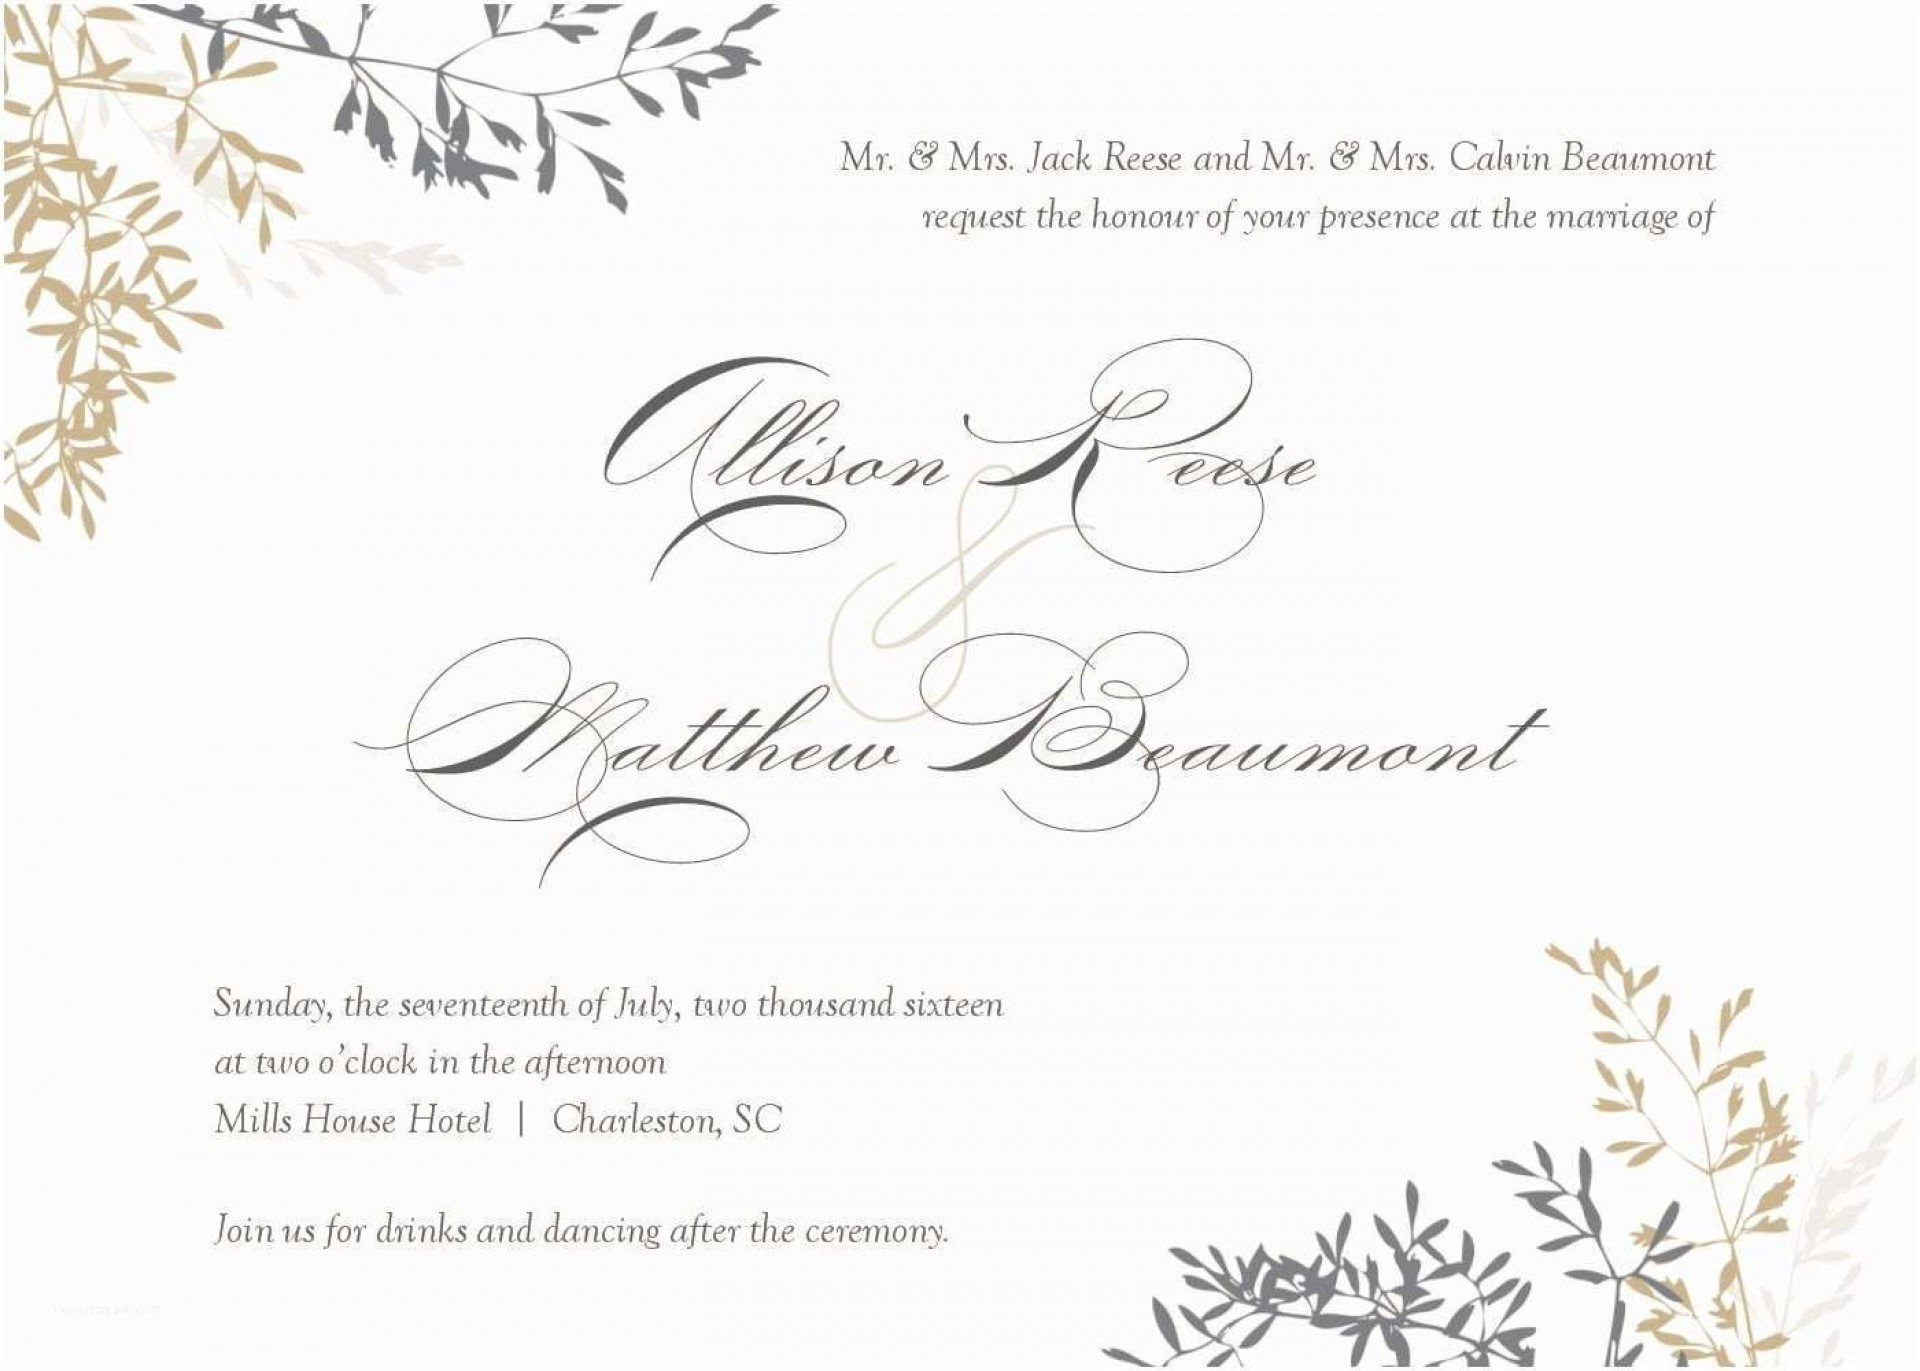 010 Stupendou Wedding Invitation Template Word Highest Quality  Invite Wording Uk Anniversary Microsoft Free Marriage1920